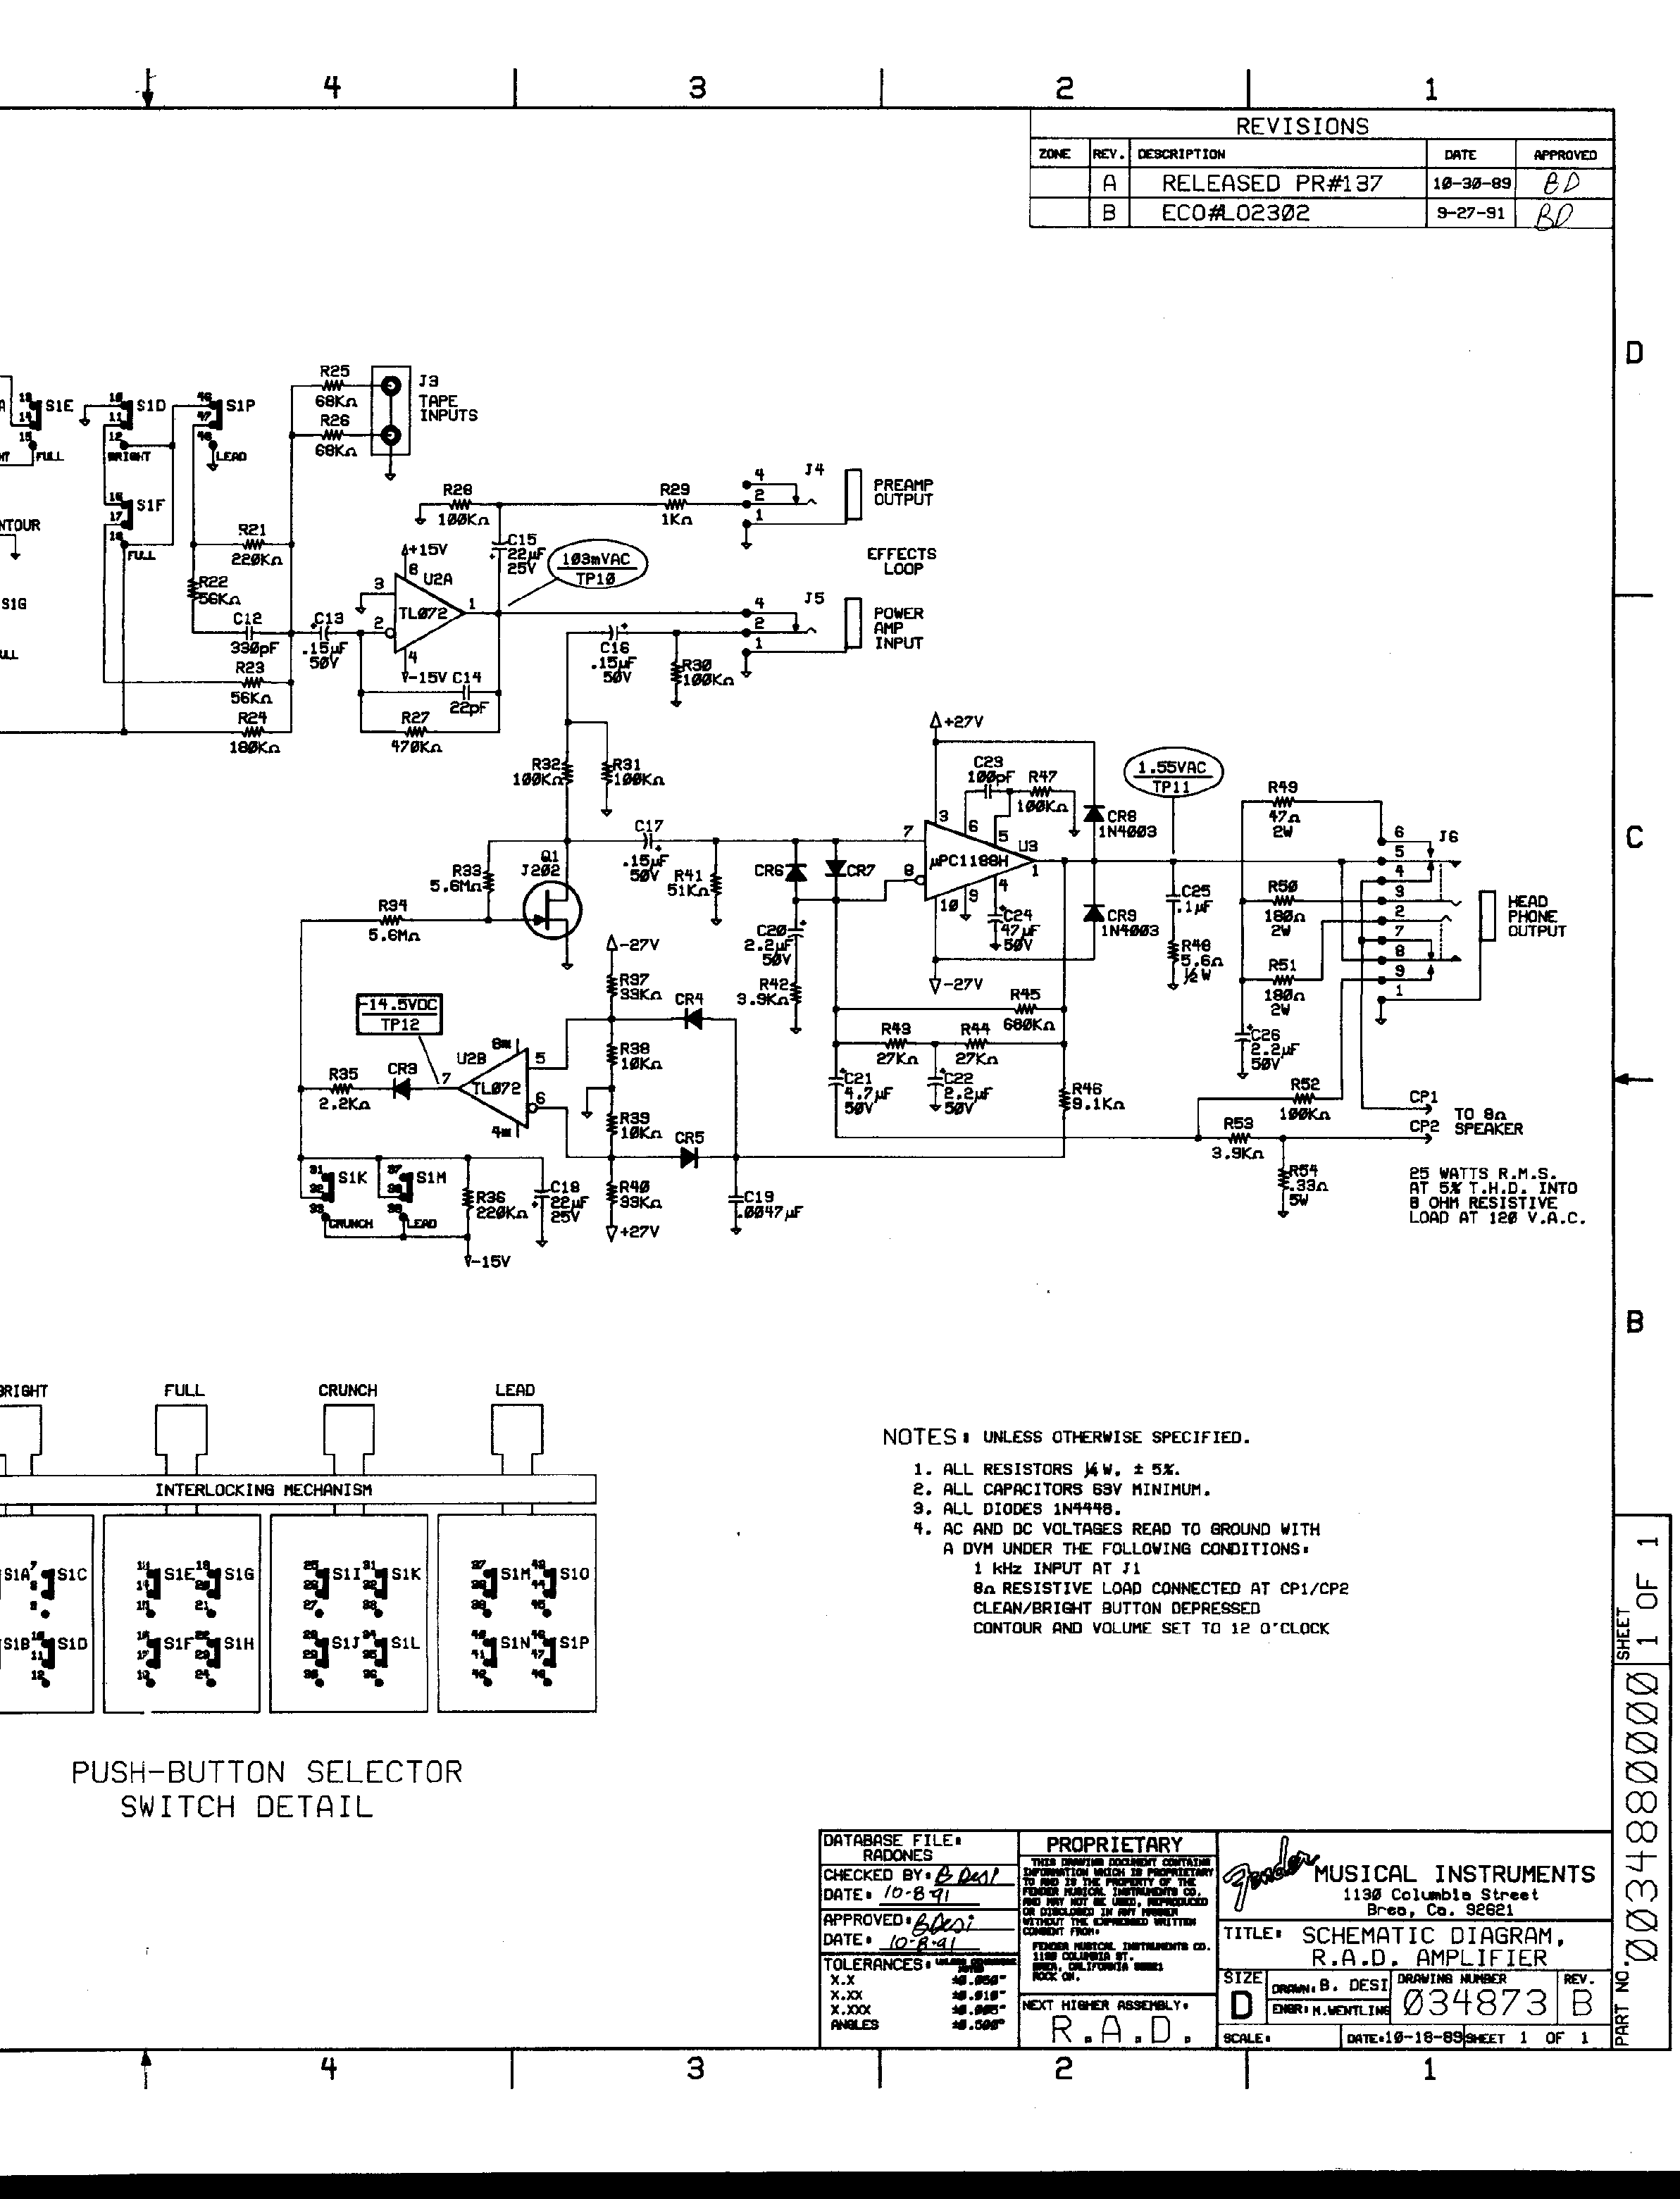 FENDER R.A.D.AMPLIFIER service manual (2nd page)